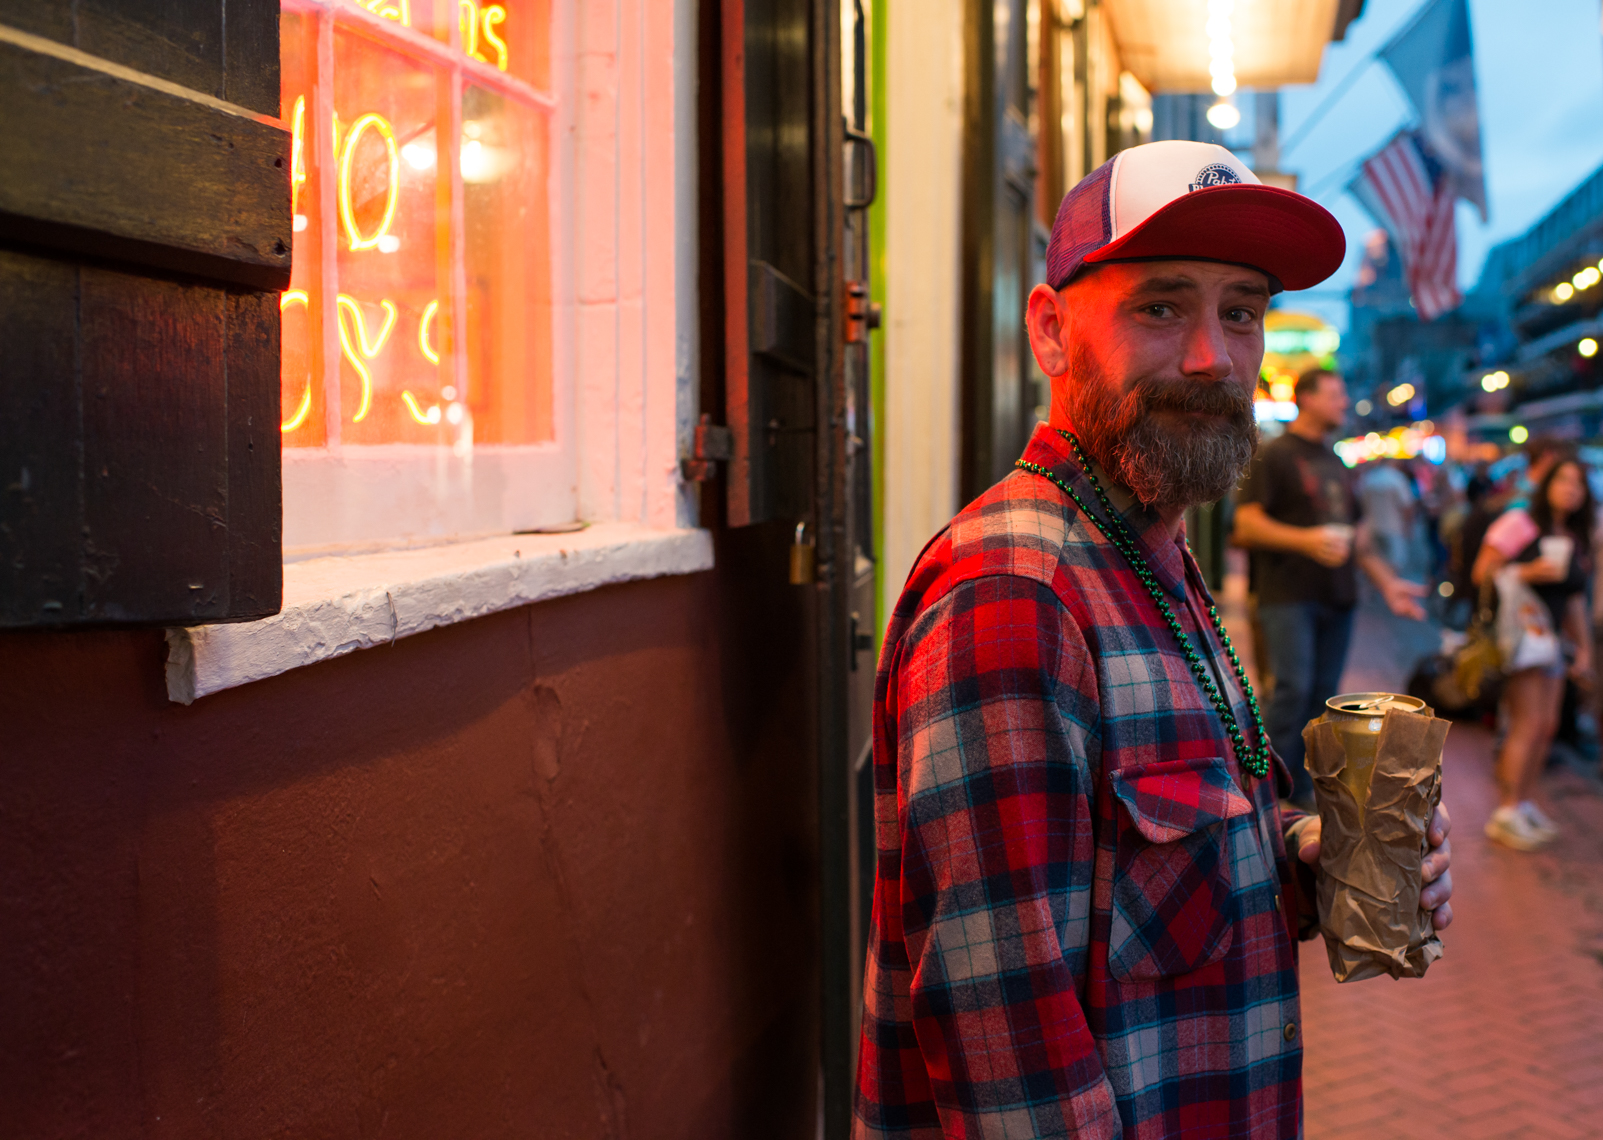 New Orleans, street photography, plaid shirt and PBR ball cap holding beer in a paper bag on Bourbon Street,  Louisiana, liquor, night